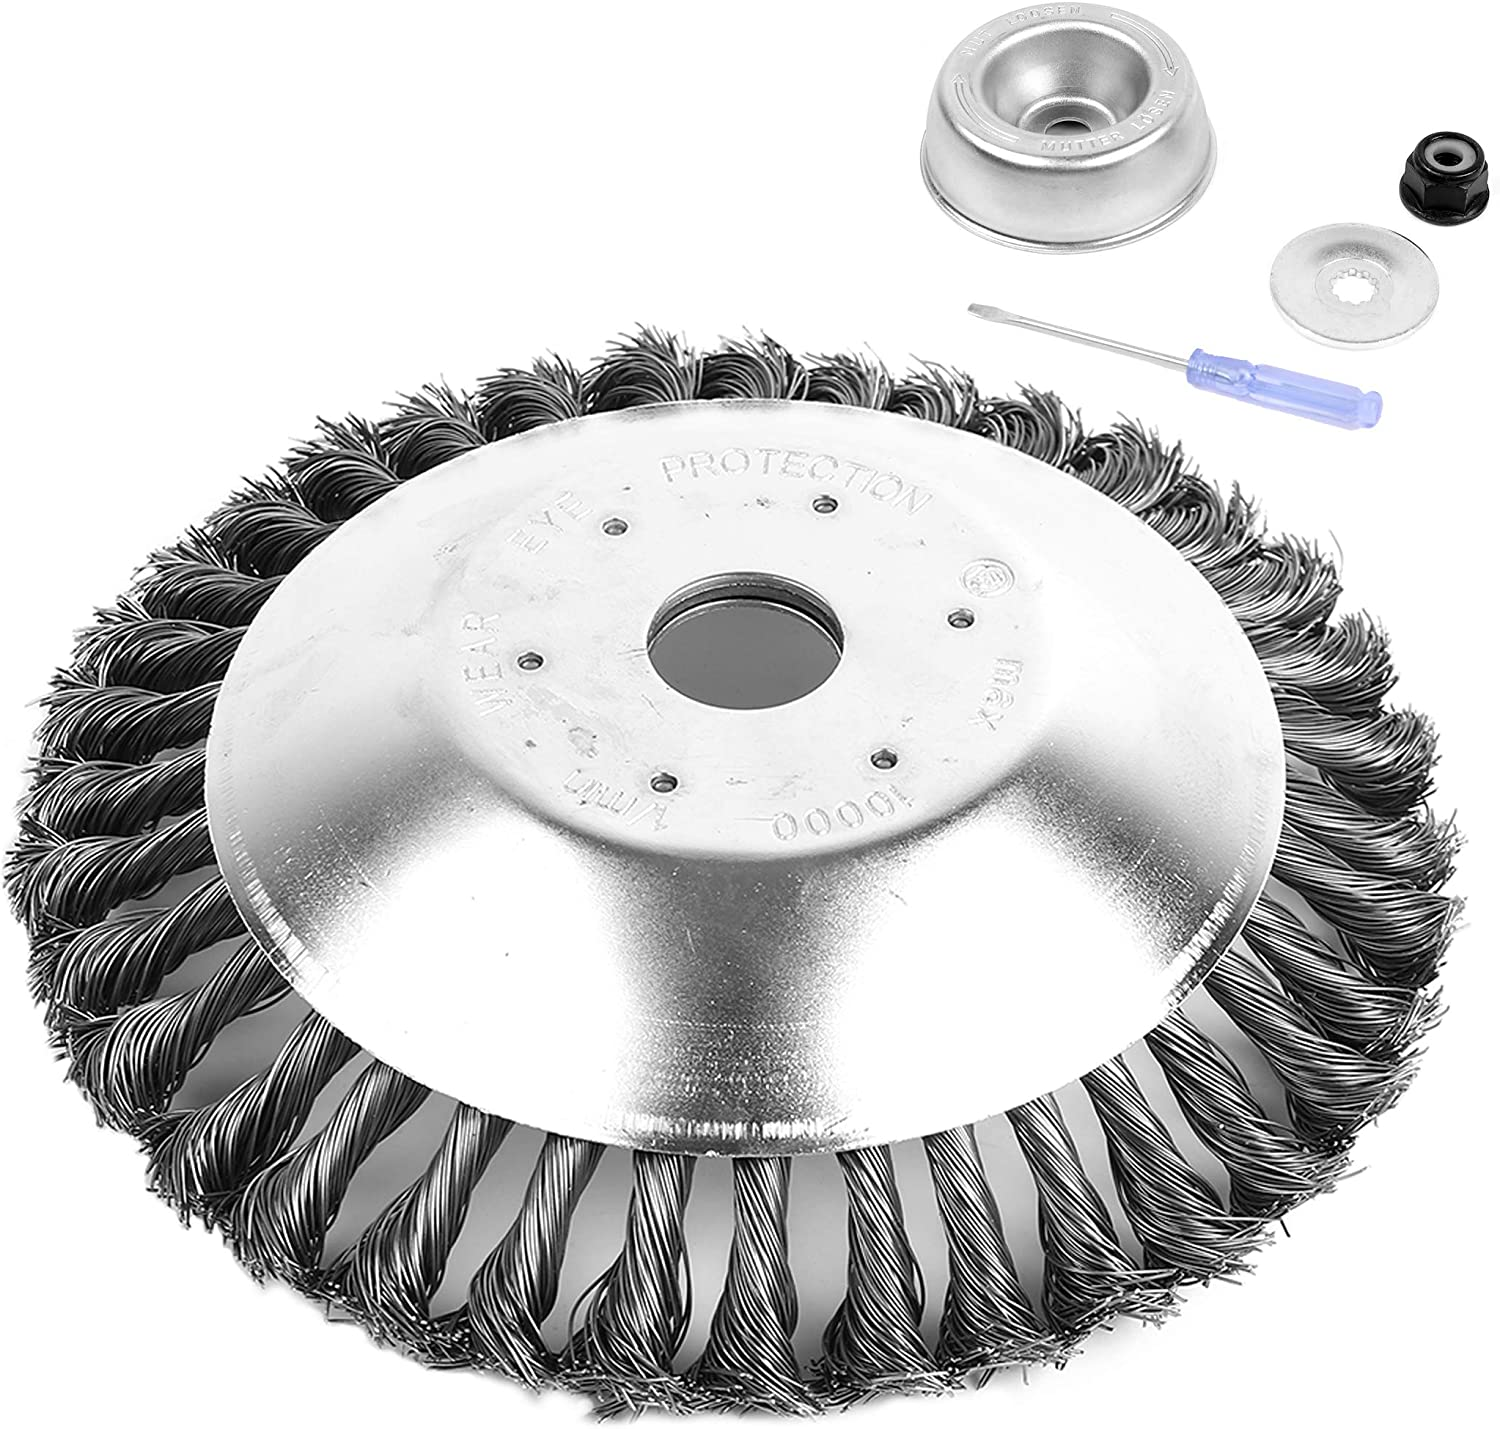 AR-PRO 8-inch Rotary Weed Brush Blades with Universal Adapter Kit Trimmer for Husqvarna/Stihl/Ego/Oregon/Hitachi/Honda and More – Cuts Like Butter: Garden & Outdoor